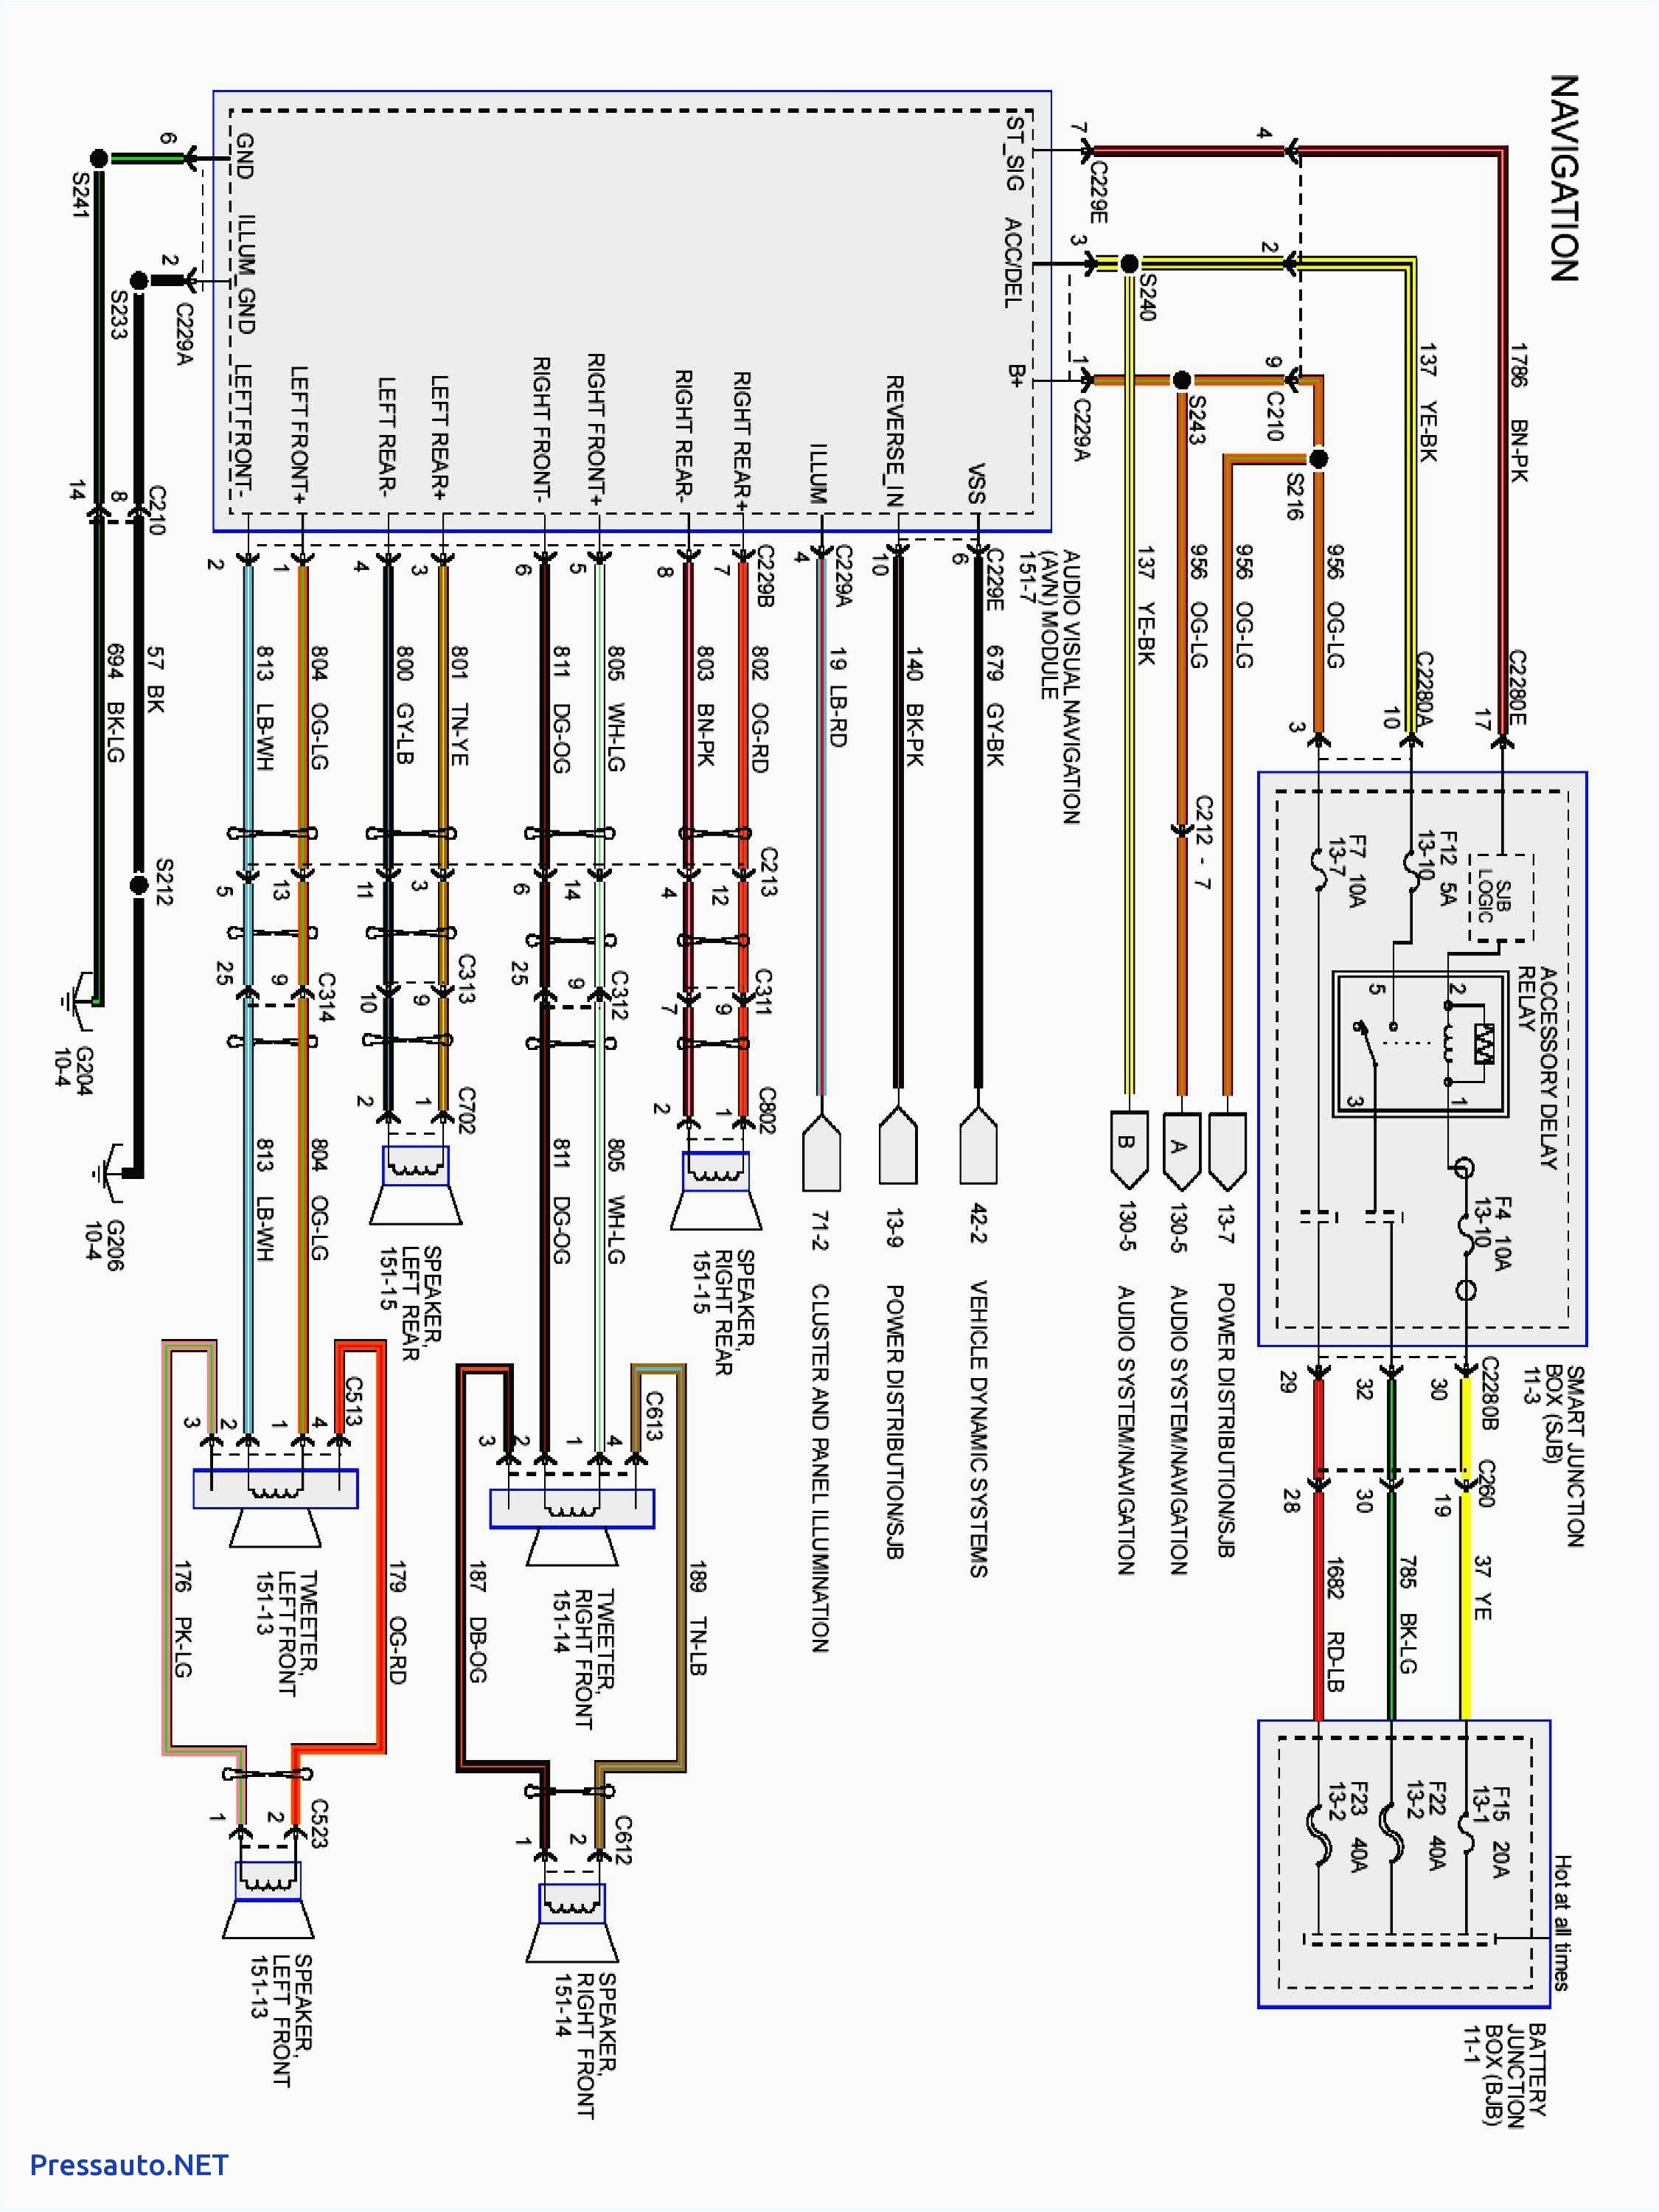 2003 ford f350 stereo wiring diagram - 2006 ford crown vic fuse box diagram  for wiring diagram schematics  wiring diagram schematics